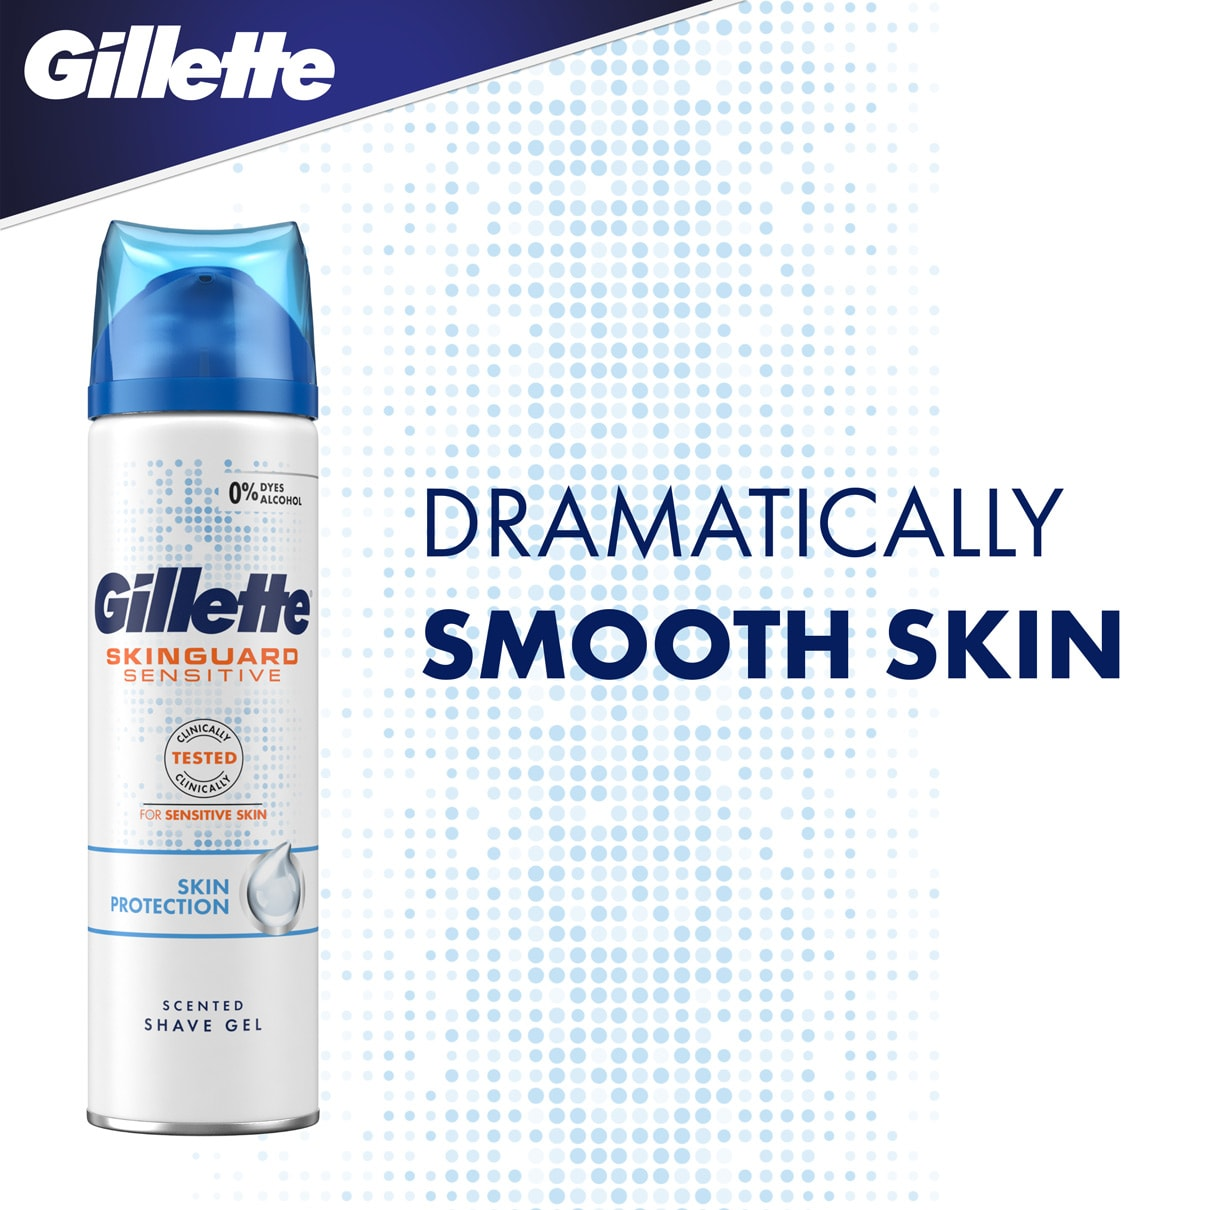 Dramatically smooth skin